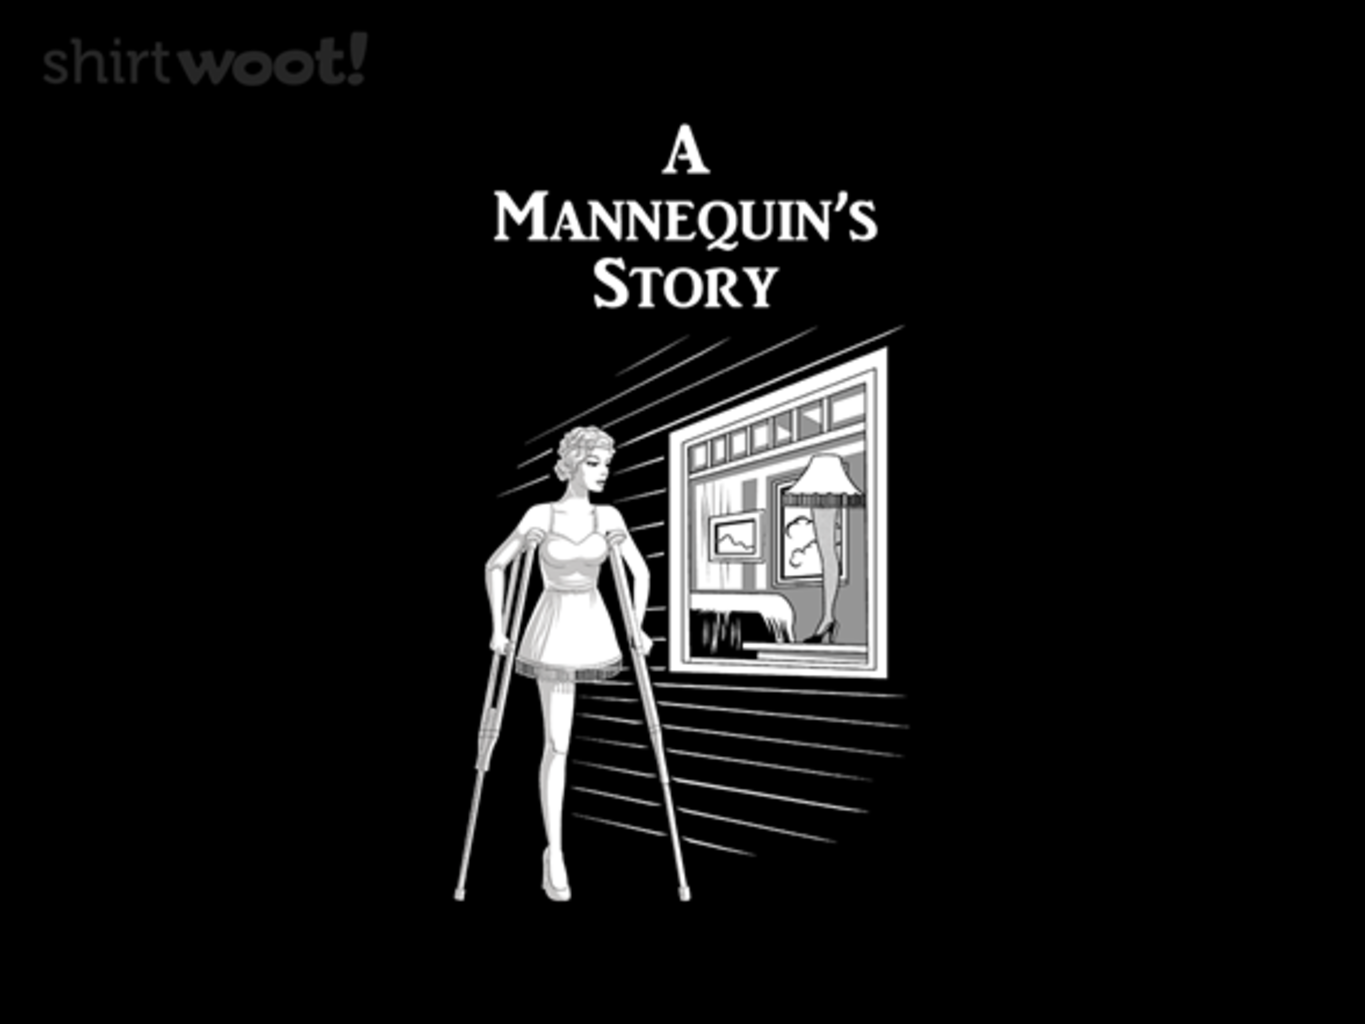 Woot!: A Mannequin's Story - $8.00 + $5 standard shipping